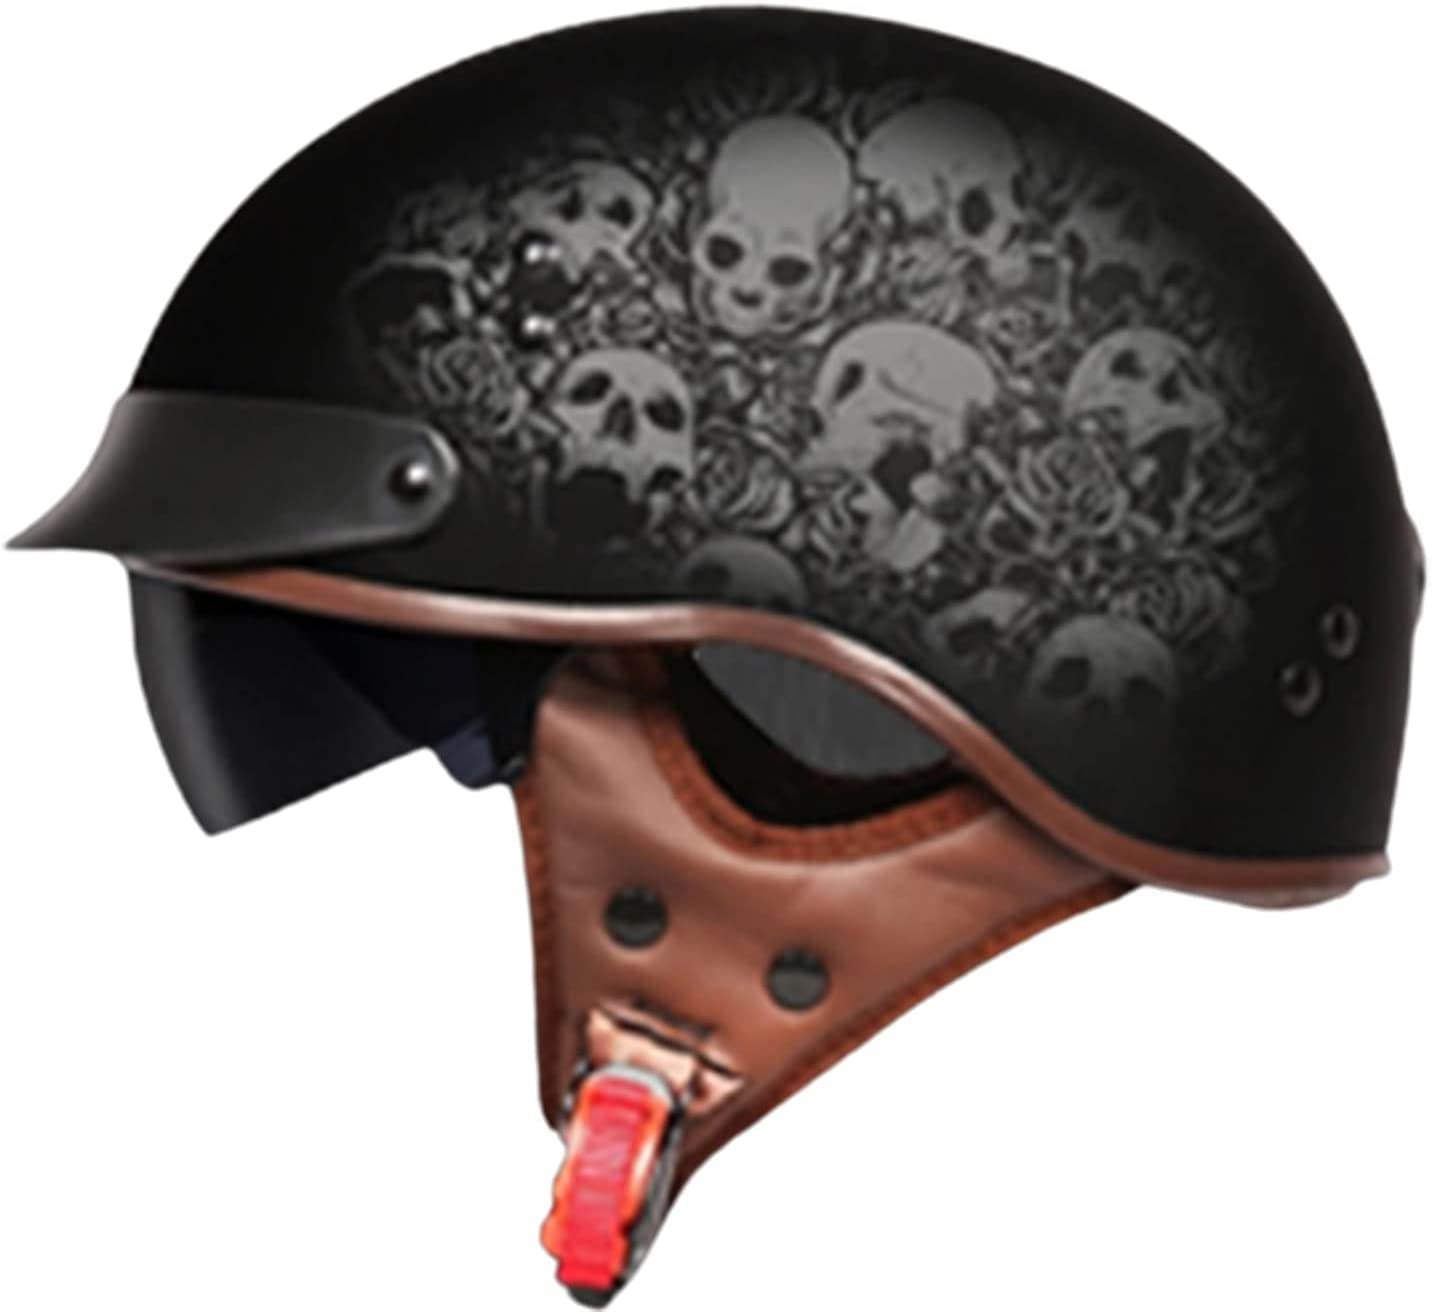 Motorcycle Helmet Male Personality Discount mail order Seasons Popular products Four Retro